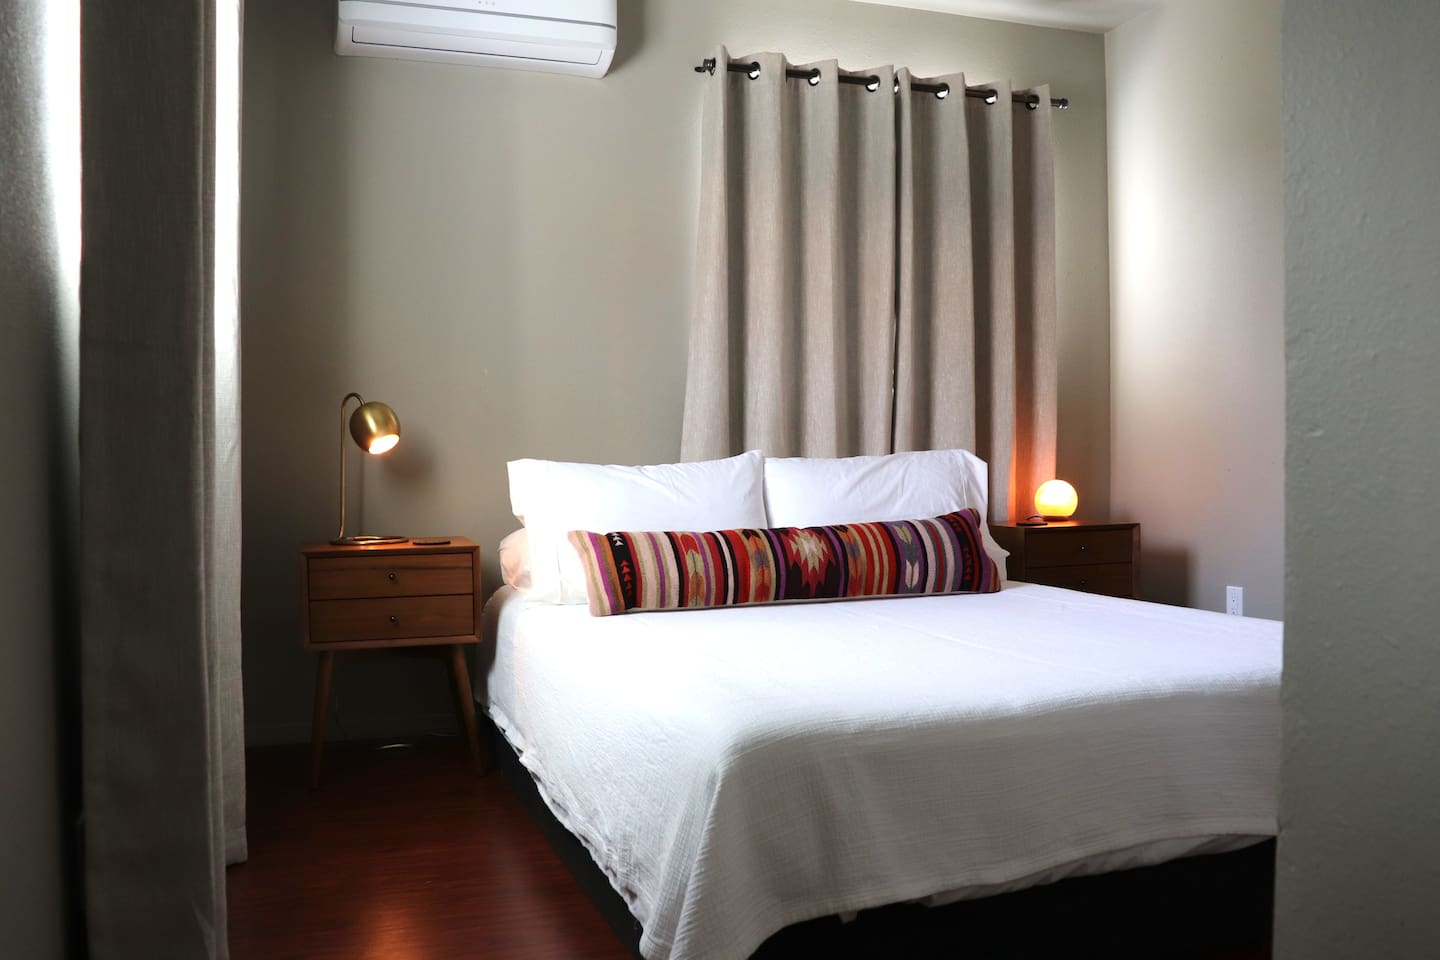 Comfortable queen bed, quiet AC/heating unit, closet with hangers, luggage stands and extra blankets